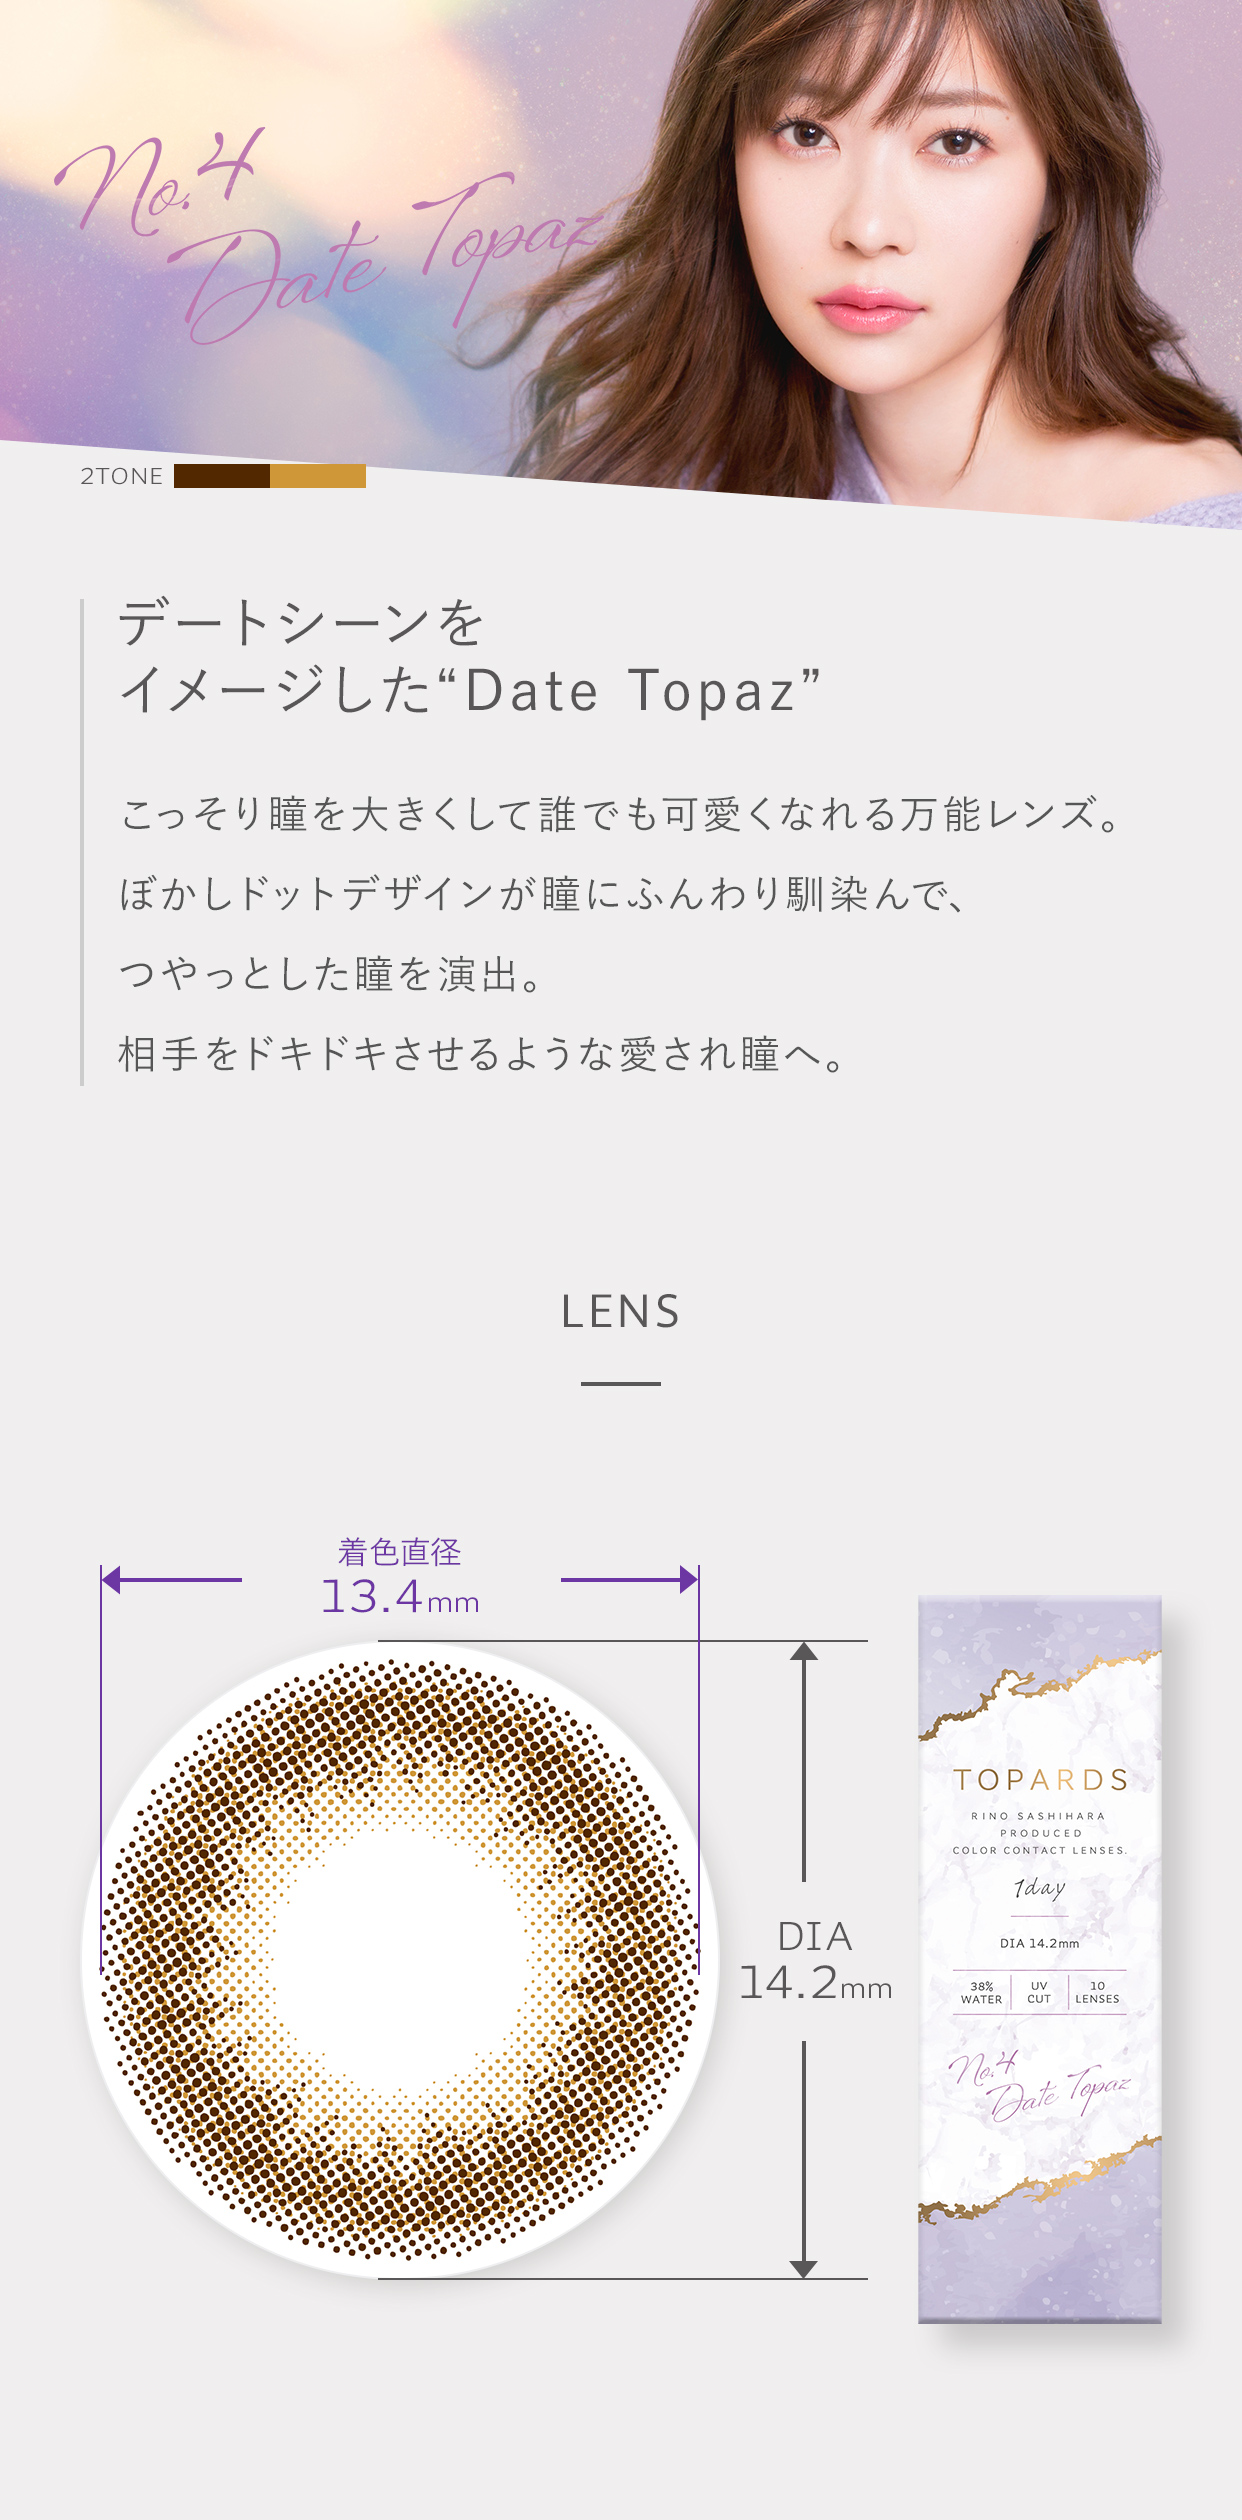 TOPARDS トパーズ 12